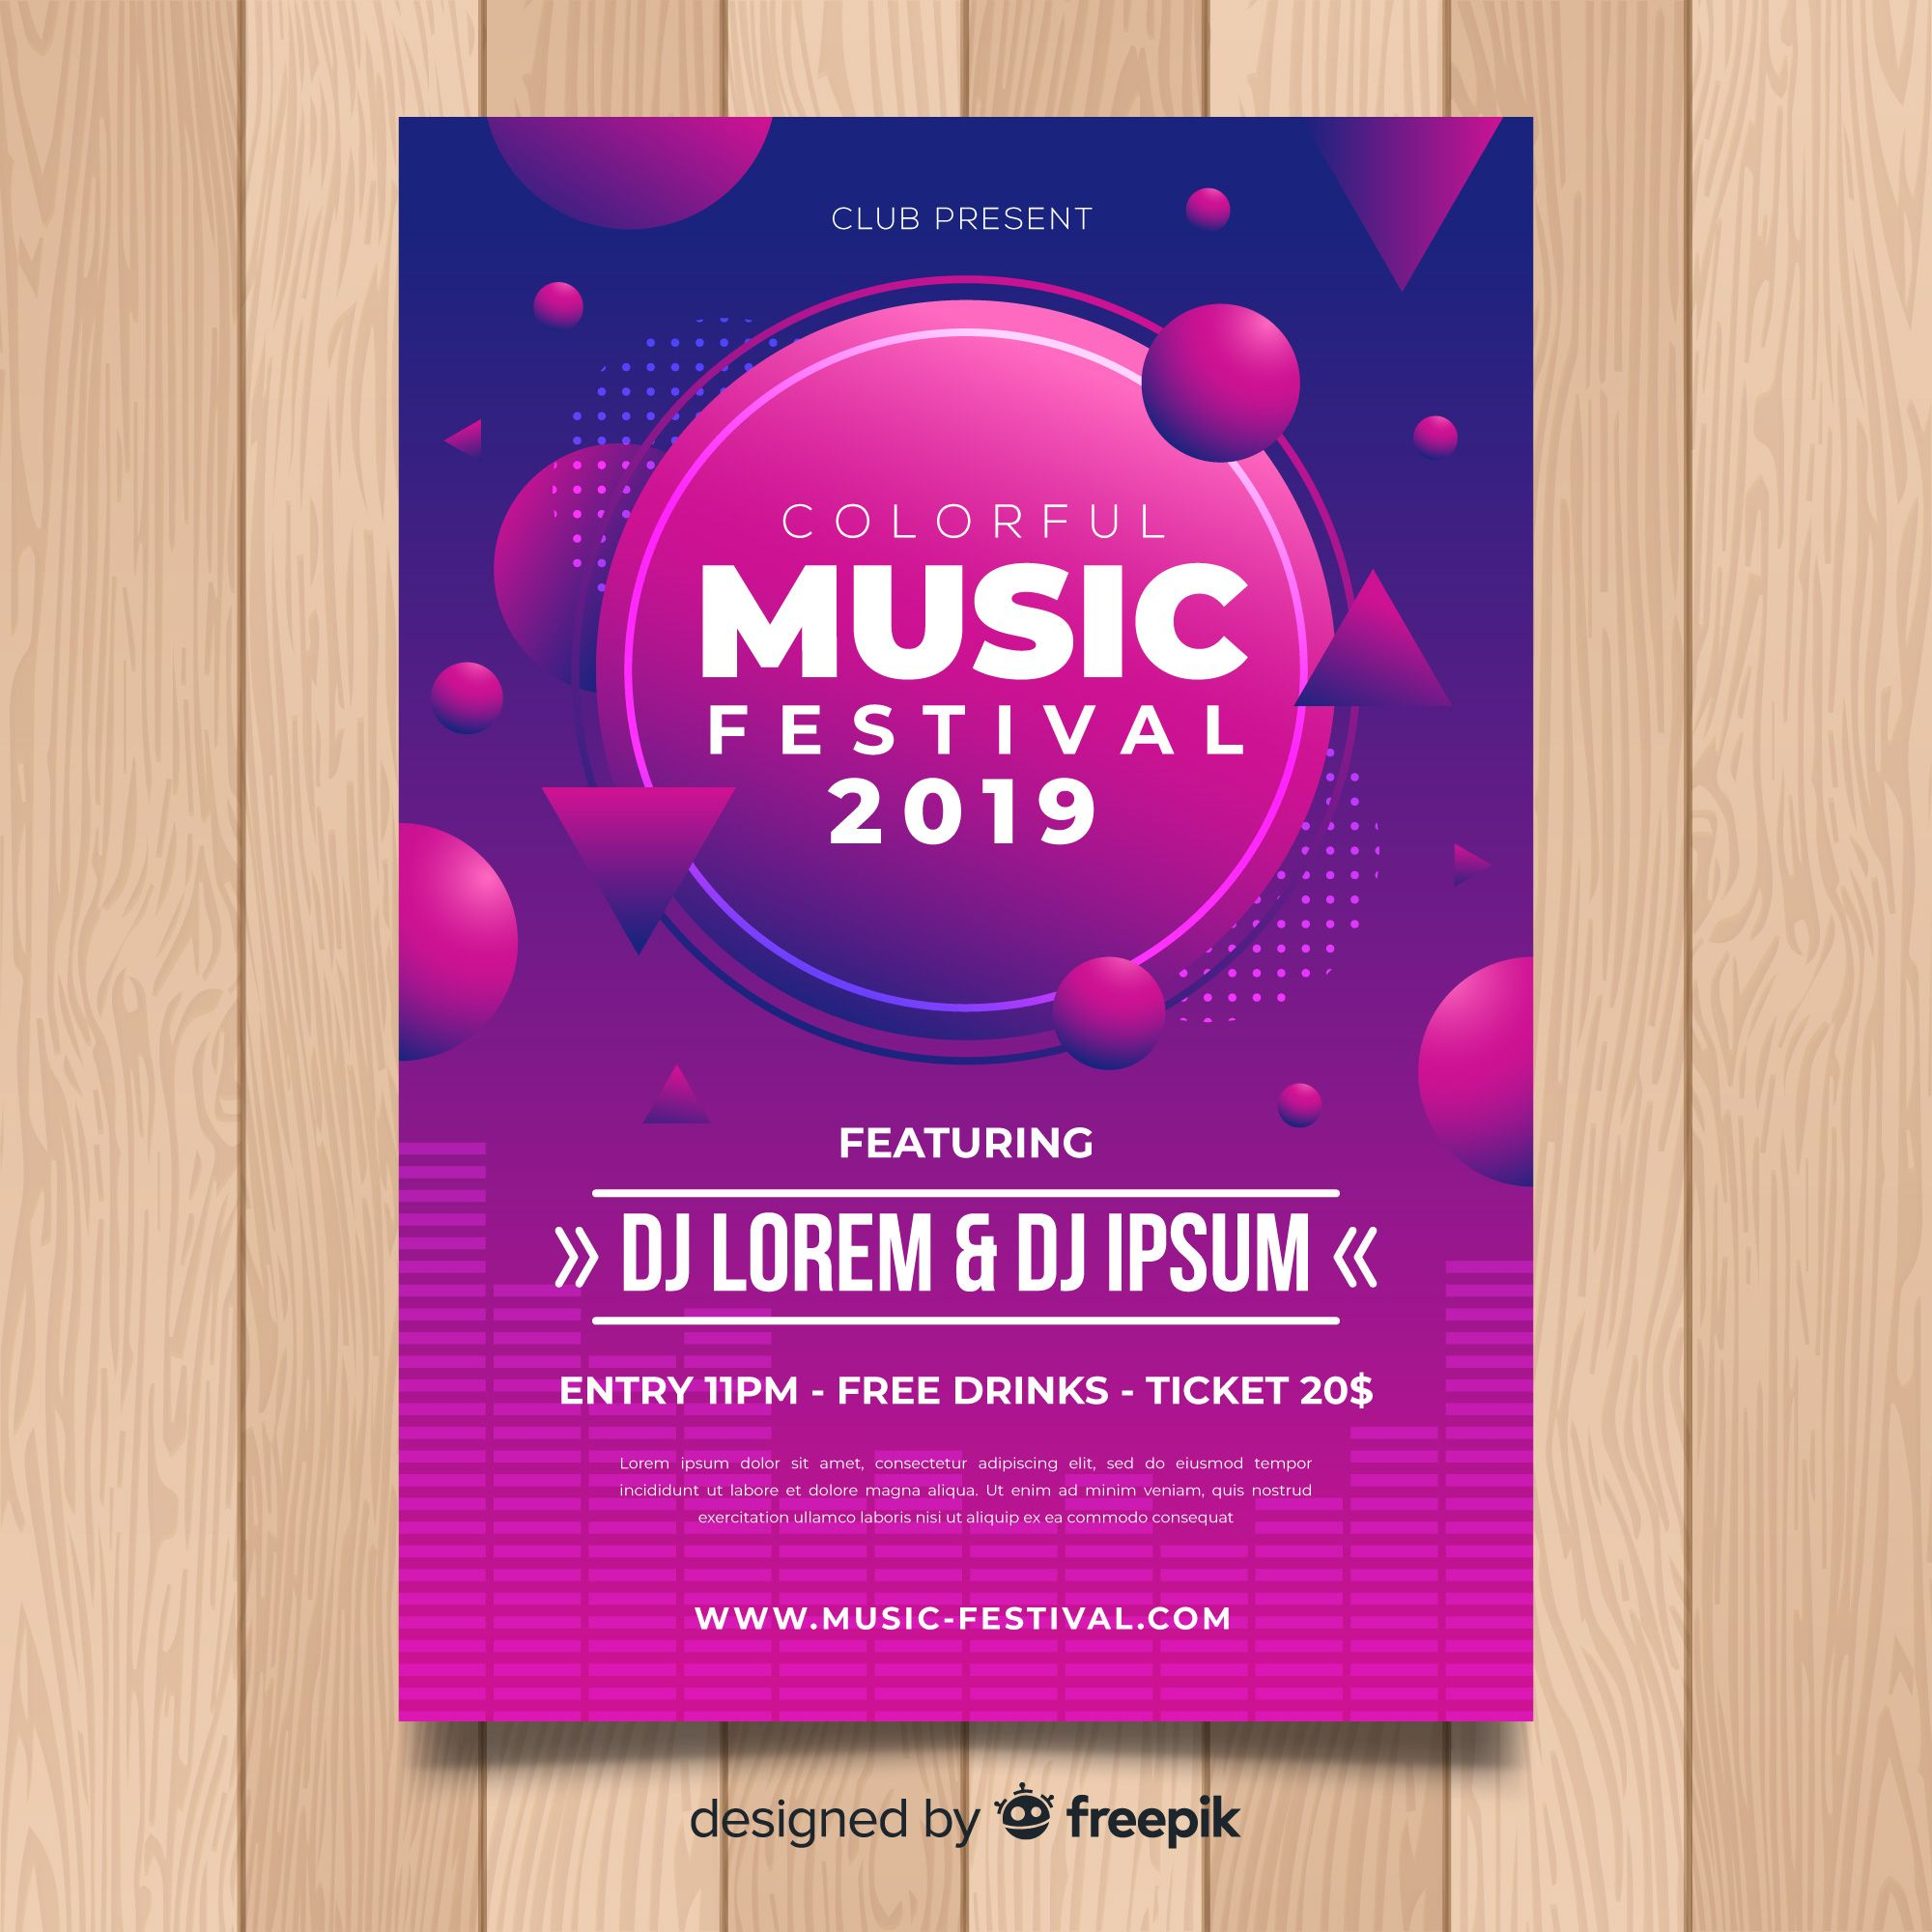 Download Colorful Music Festival Poster Template For Free Music Festival Poster Music Festival Festival Posters